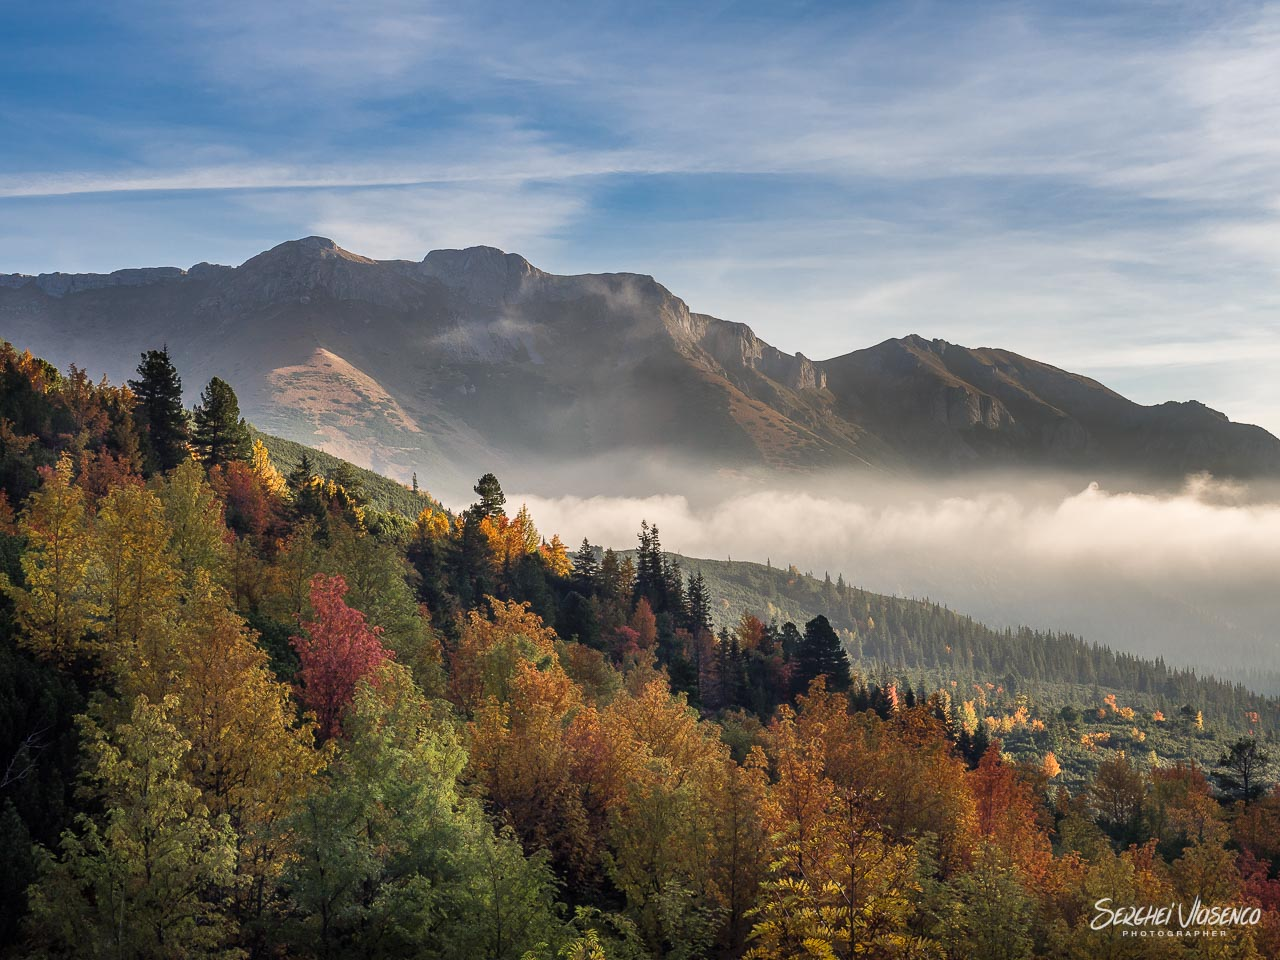 View of the autumn-colored Green Lake Valley in the High Tatras, captured during sunrise.